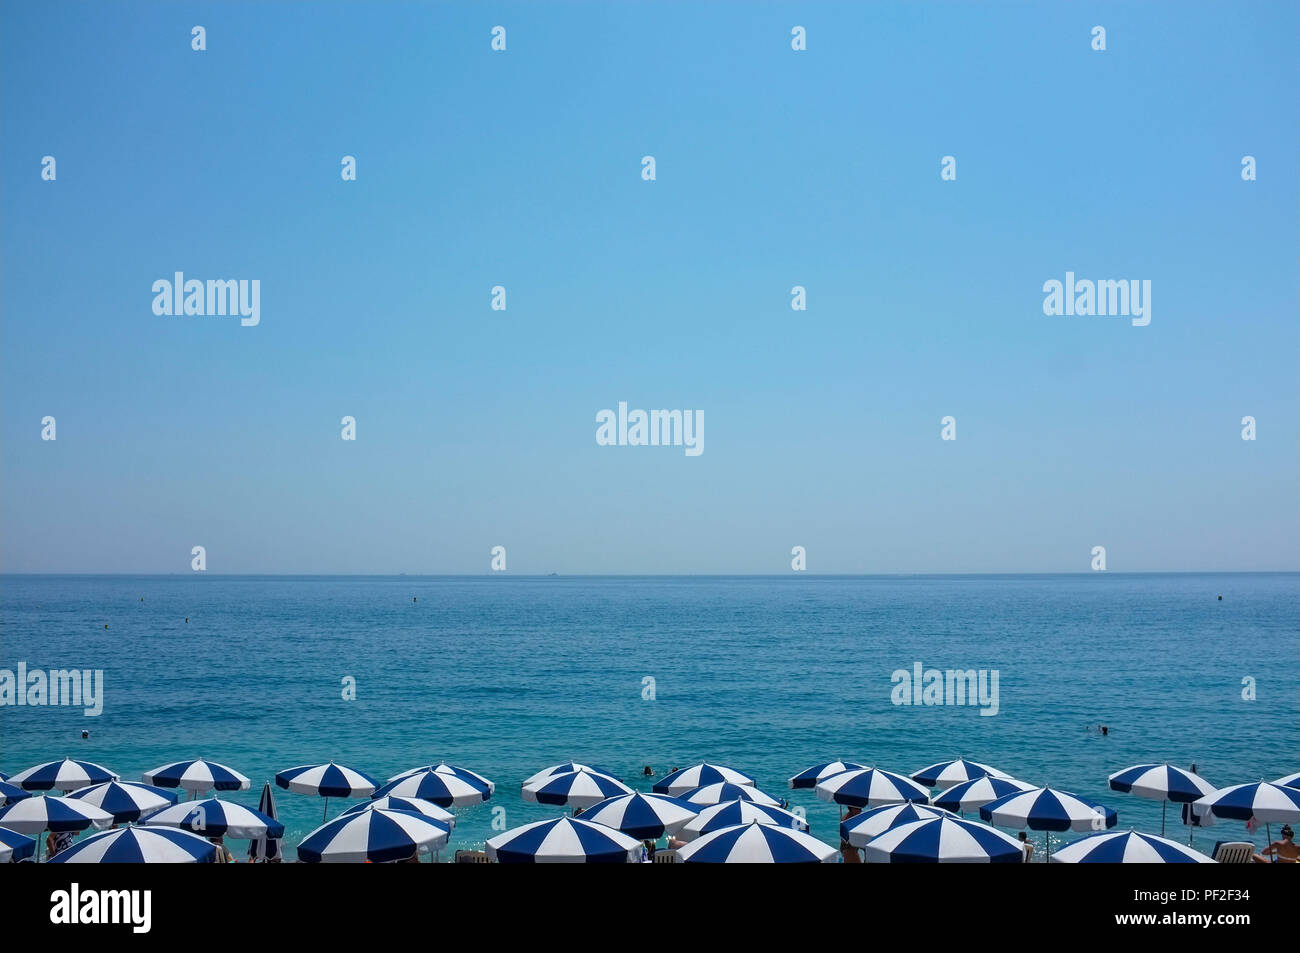 blue-and-white-parasol-on-the-beach-in-n